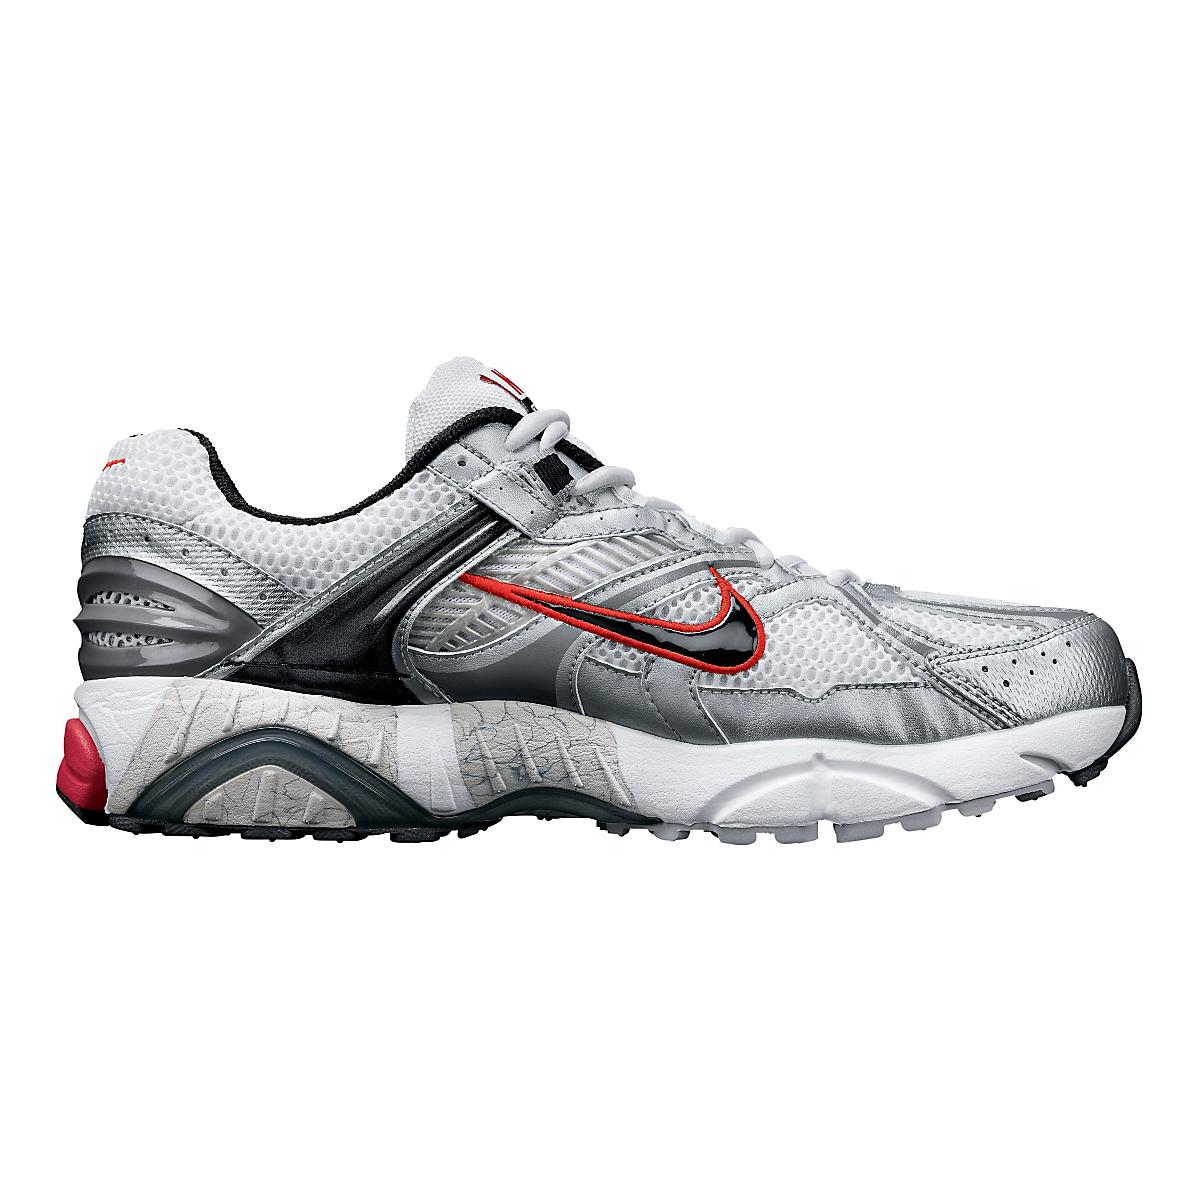 d66473b85ad85a Mens Nike Zoom Equalon+ 4 Running Shoe at Road Runner Sports